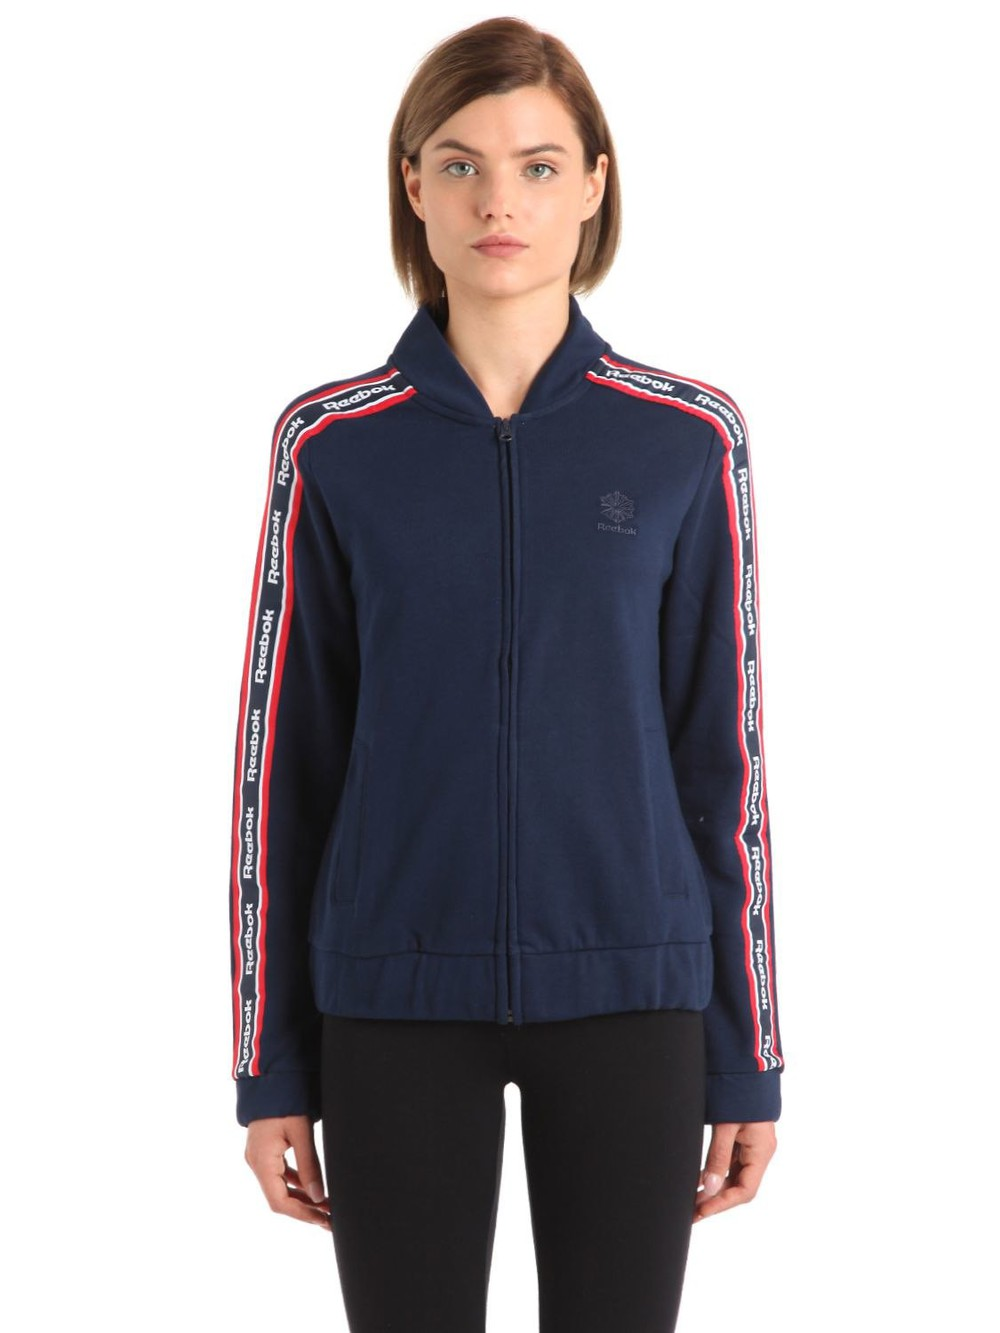 REEBOK CLASSICS Cotton Track Jacket With Logo Bands in navy